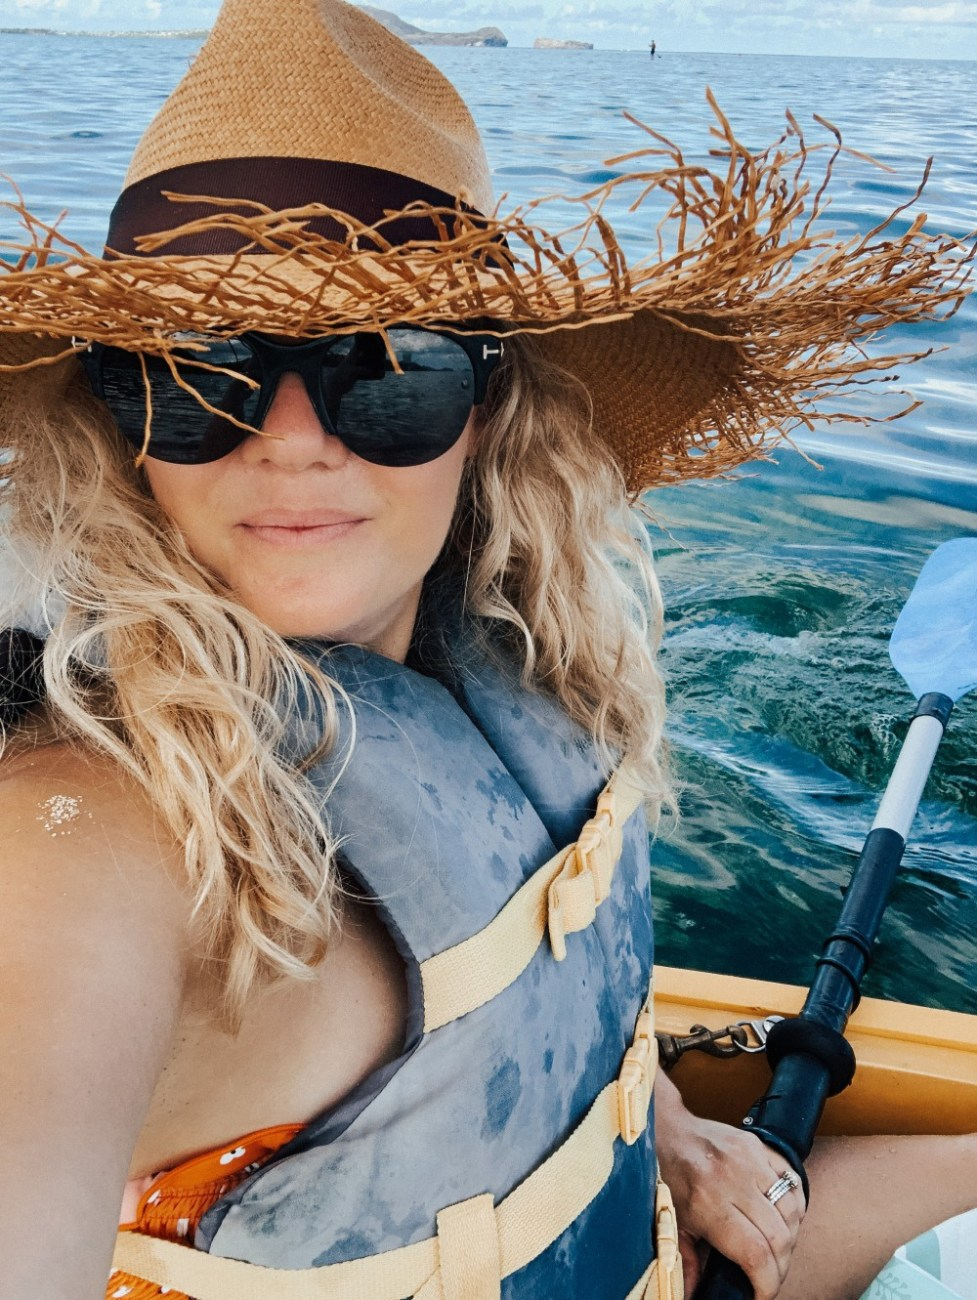 Sharing our experience ocean kayaking in Oahu on the blog! Click on over to give it a read!! #oceankayaking #outdooractivities #hawaii #oahu